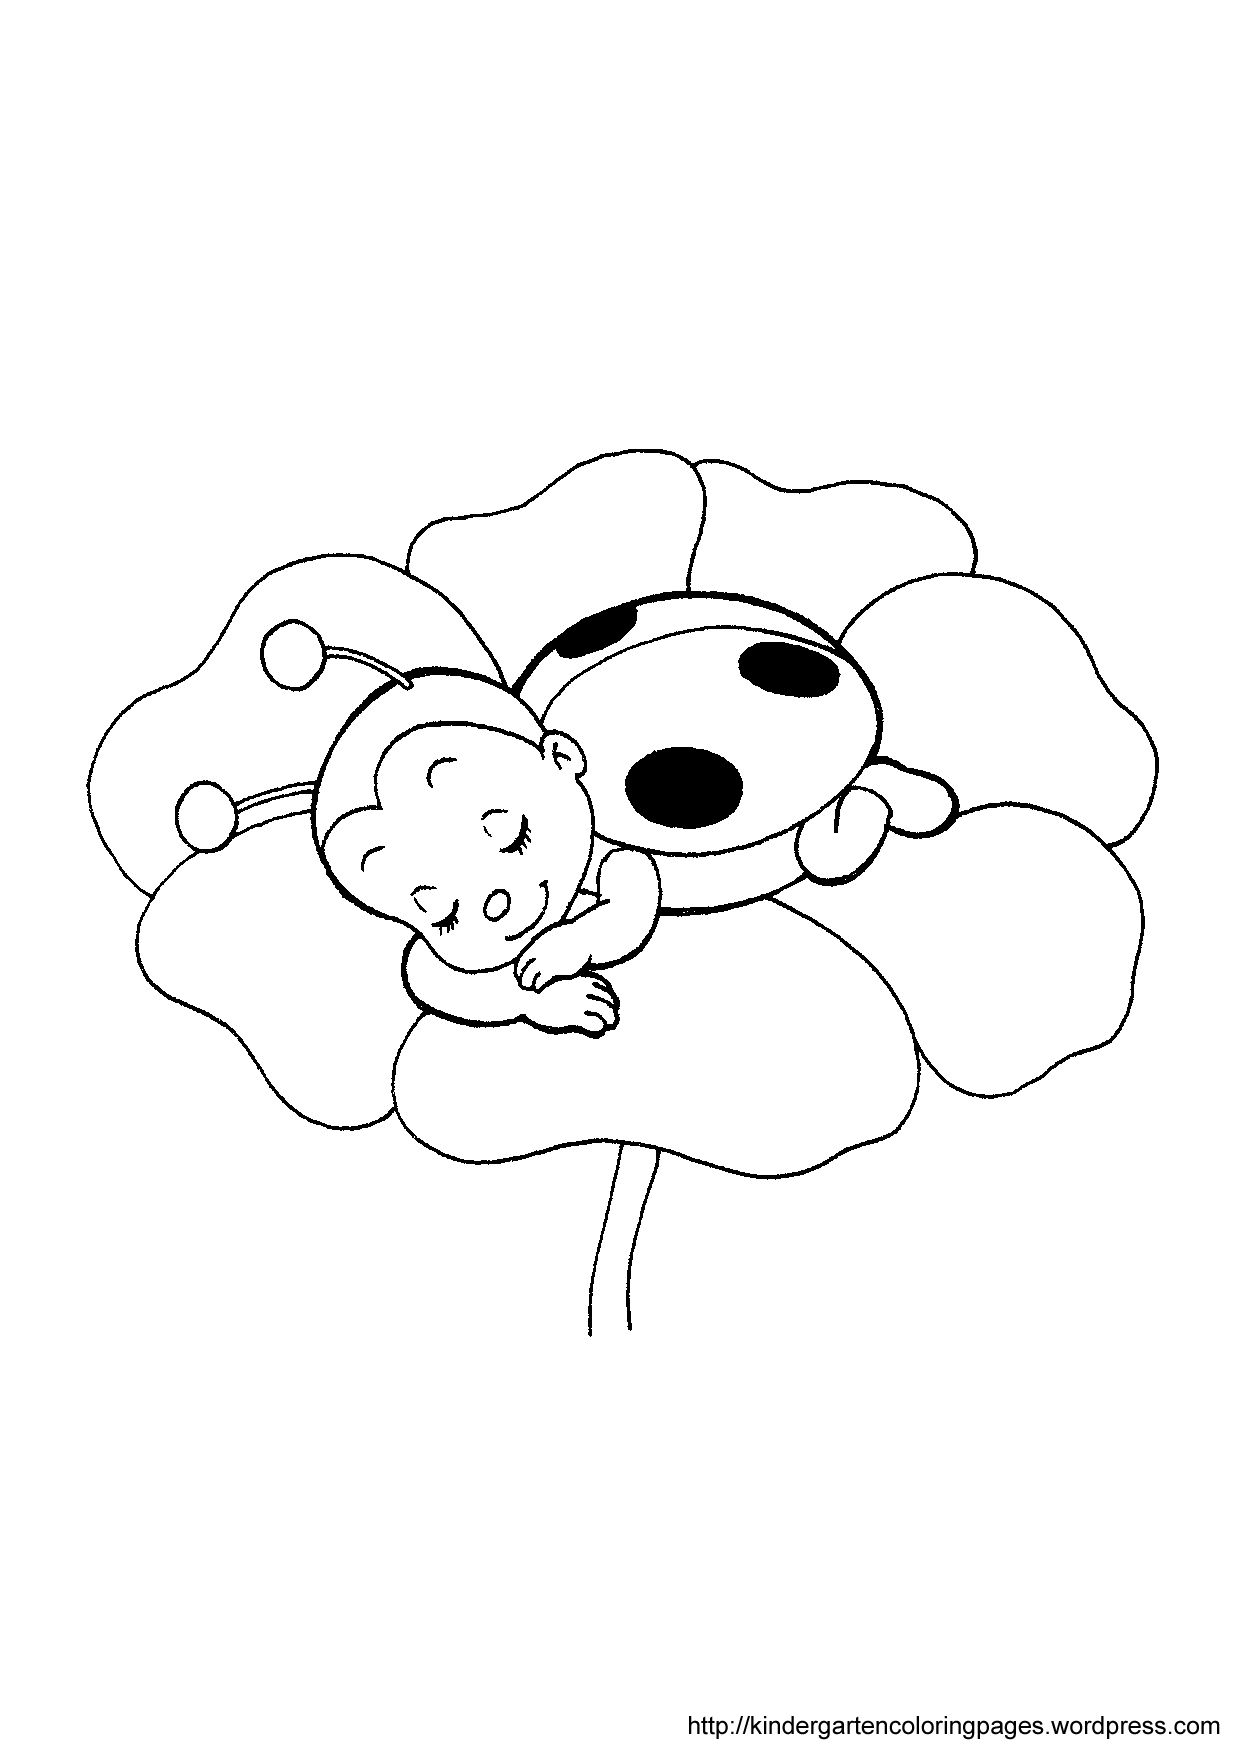 Ladybug coloring pages ladybug on flower coloring page filigran